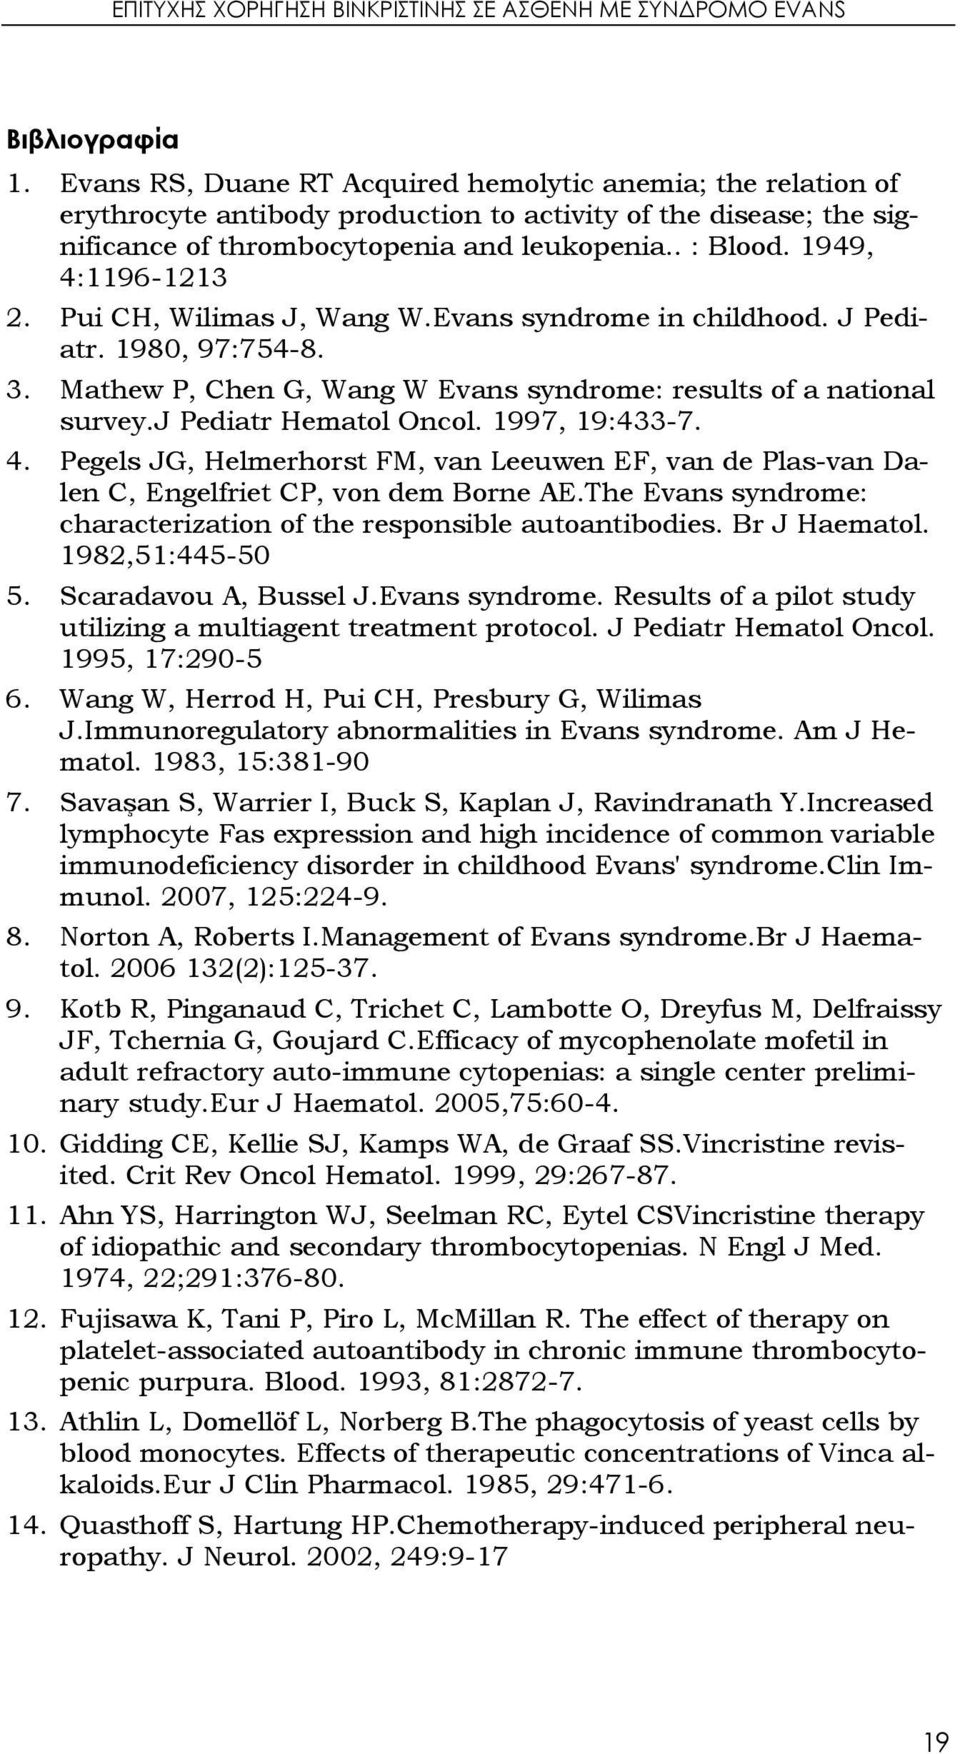 1949, 4:1196-1213 2. Pui CH, Wilimas J, Wang W.Evans syndrome in childhood. J Pediatr. 1980, 97:754-8. 3. Mathew P, Chen G, Wang W Evans syndrome: results of a national survey.j Pediatr Hematol Oncol.